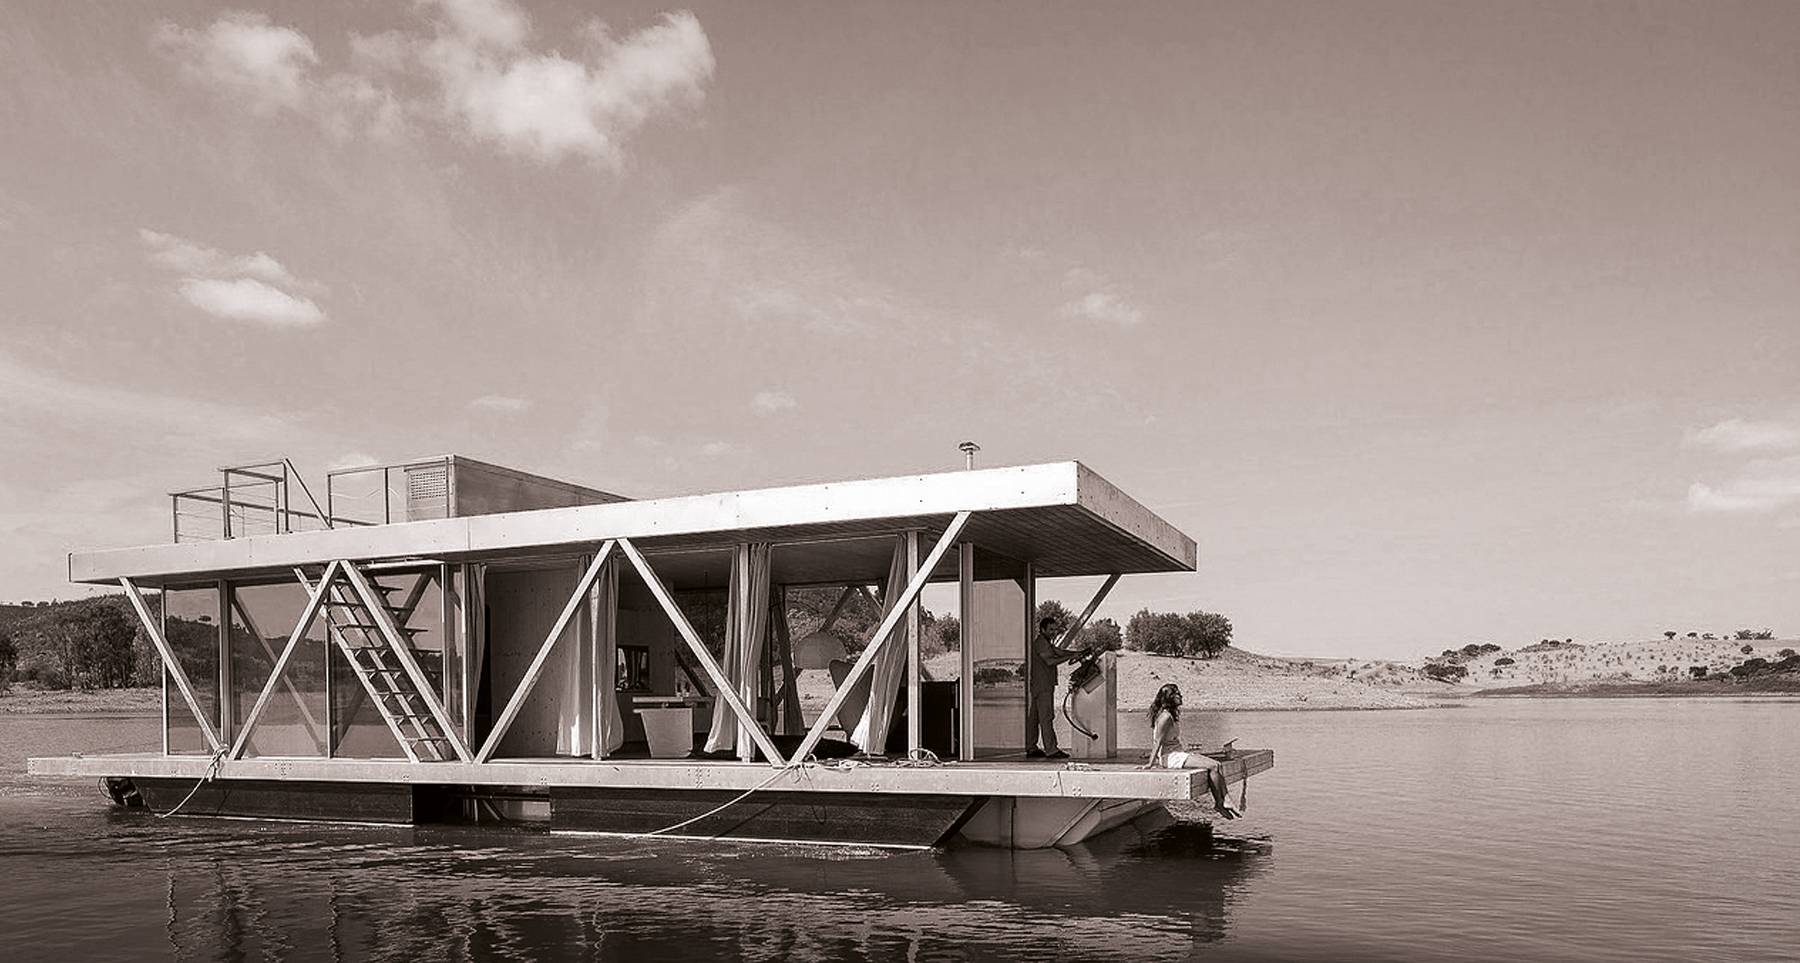 A floating home on the Alqueva Lake. Can you imagine a getaway for two on a mobile house in the middle of a lake or in a pleasant river cove for the entire family or a group of friends, but with the comfort and convenience of a fully-furnished home?